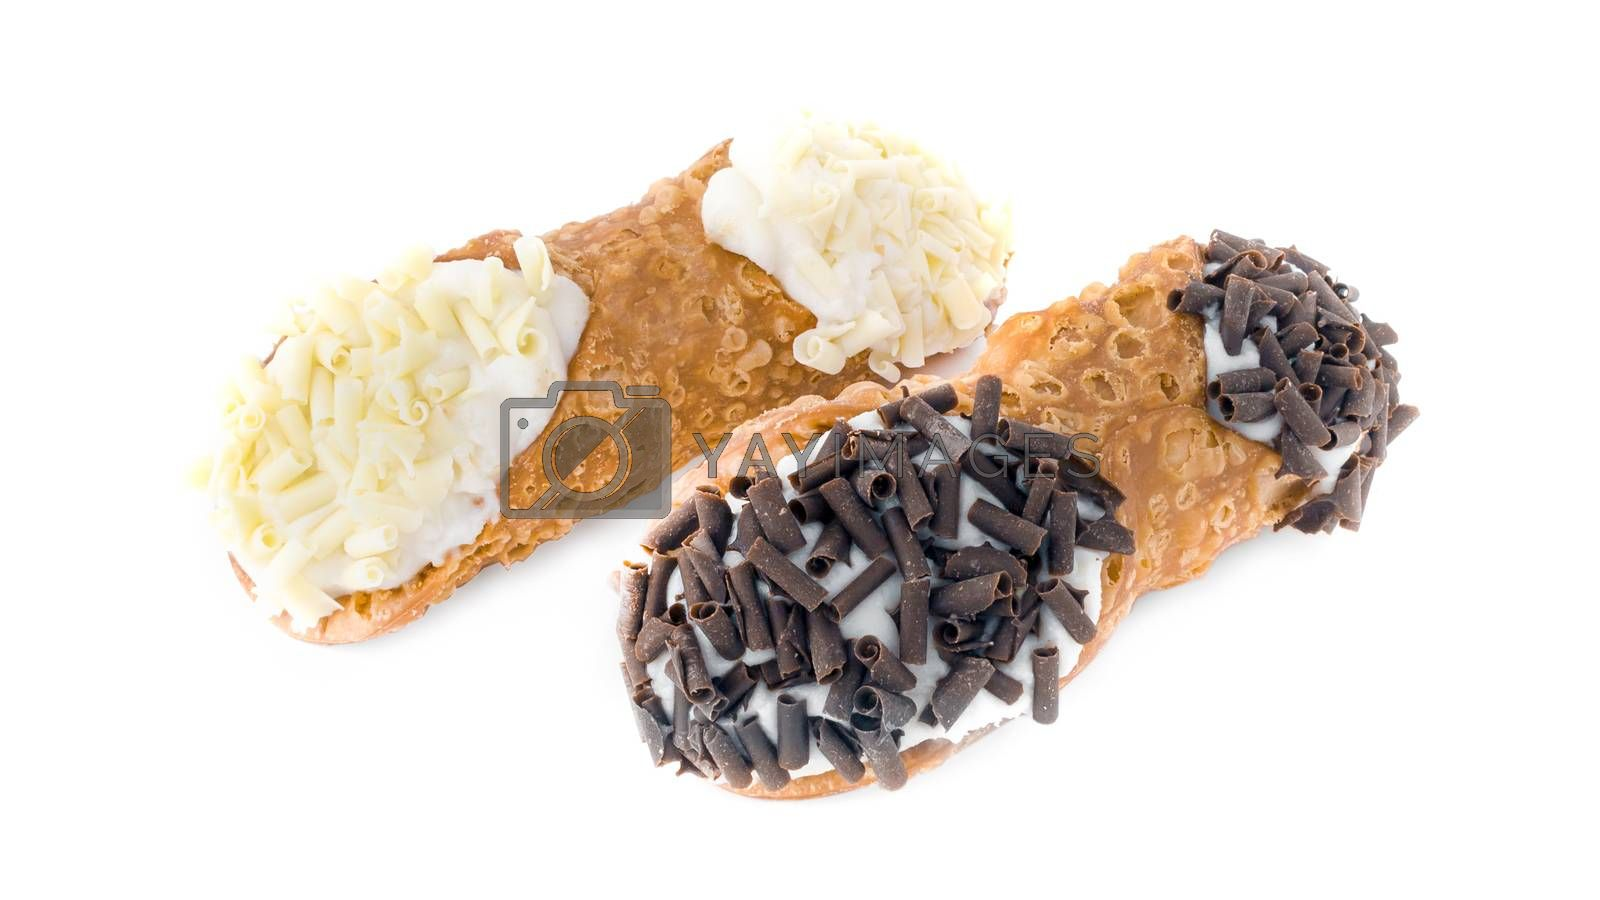 Sicilian cannoli. Three cannoli pastries. Traditional Sicilian dessert, filled with a rich ricotta cream  enriched with pistachio grain, hazelnut grain and chocolate flakes.